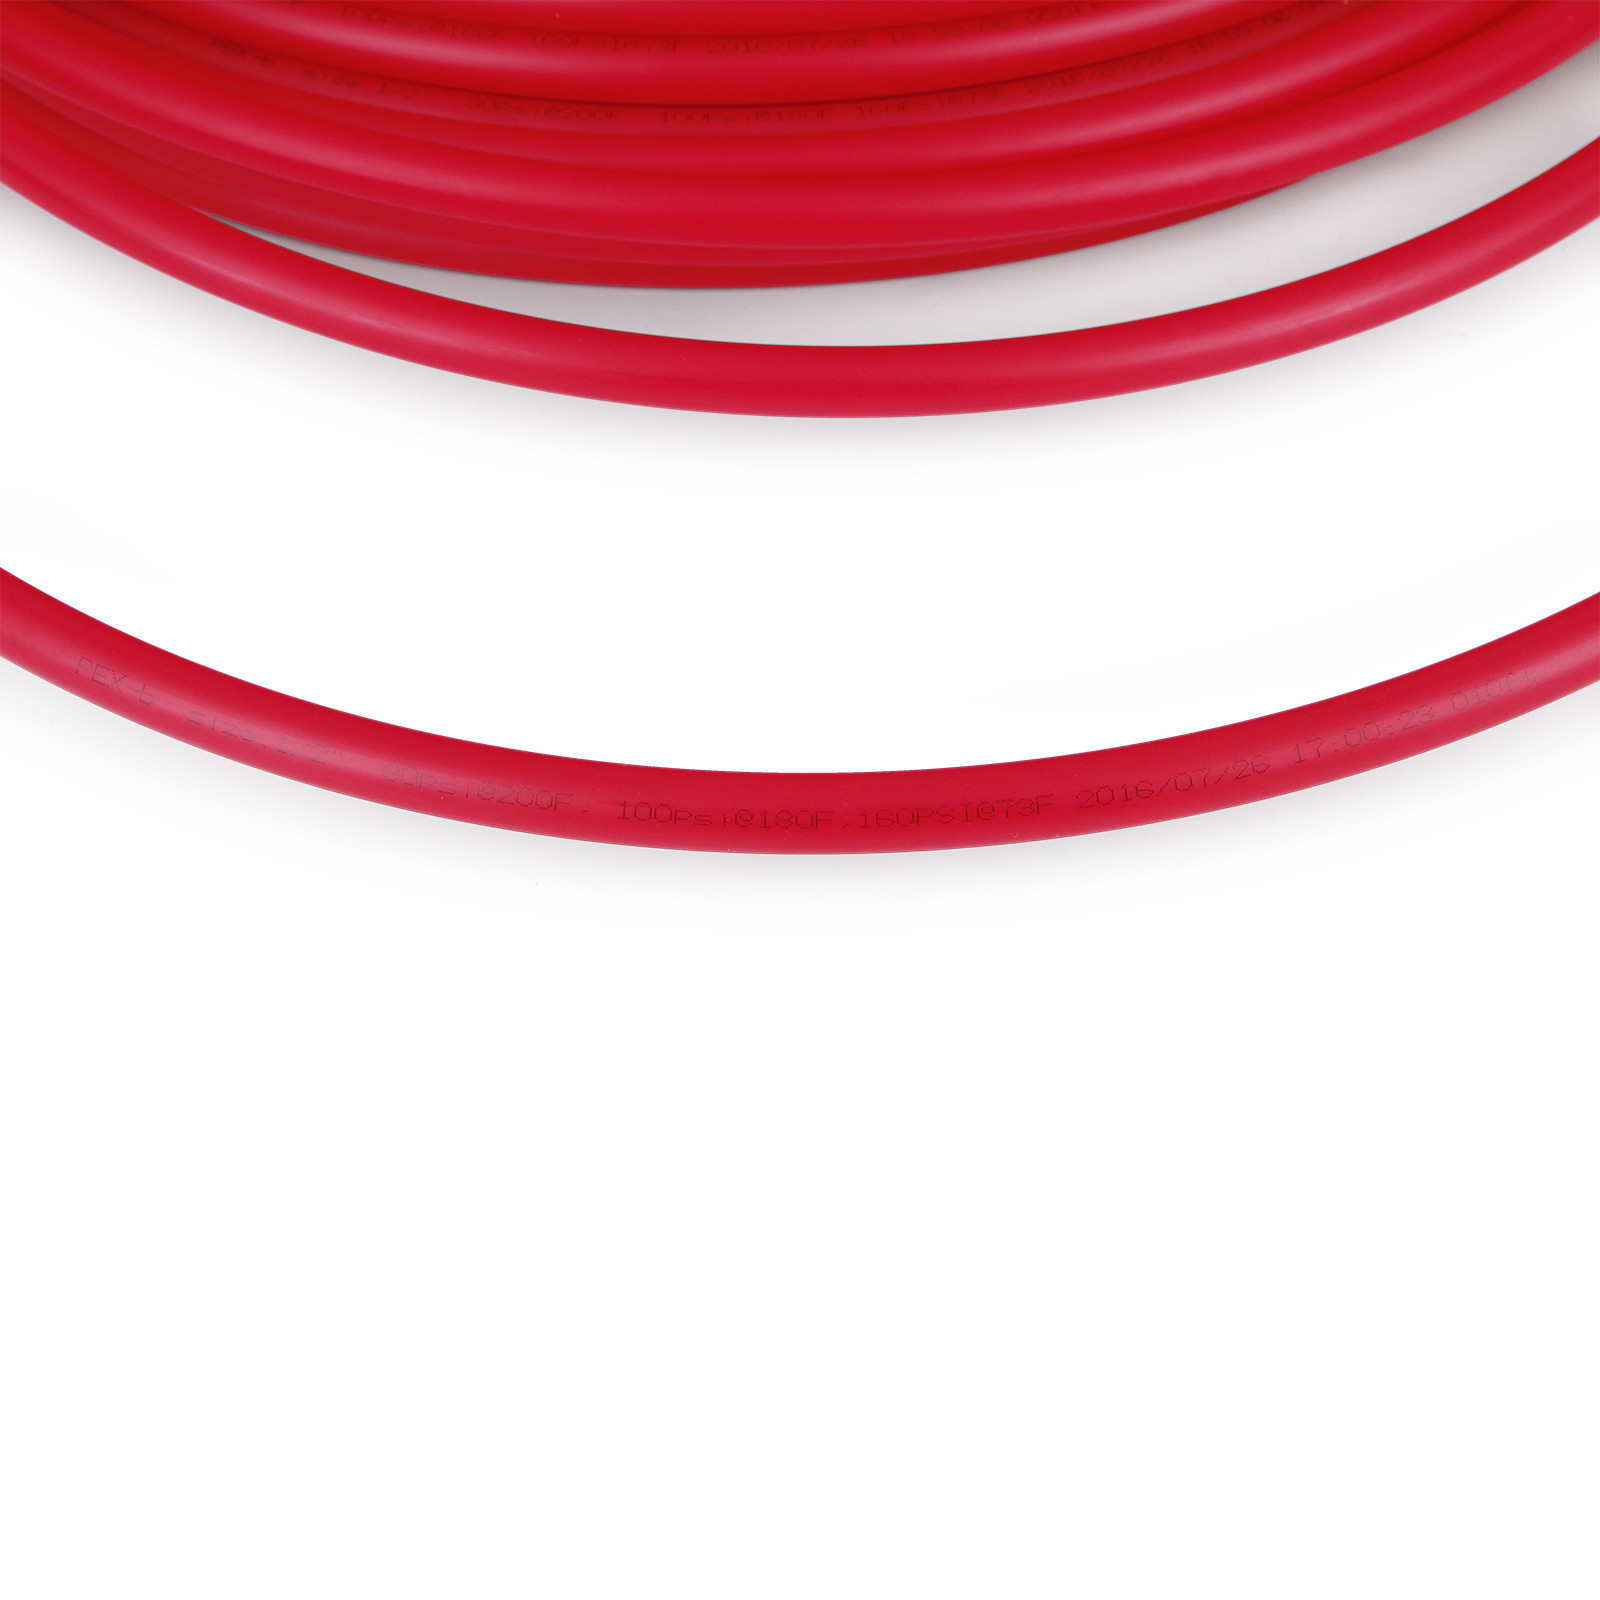 1-2-034-x-100-200-300-1000ft-Pex-Tubing-Oxygen-Barrier-Red-Blue-Radiant-Floor-Heat thumbnail 23